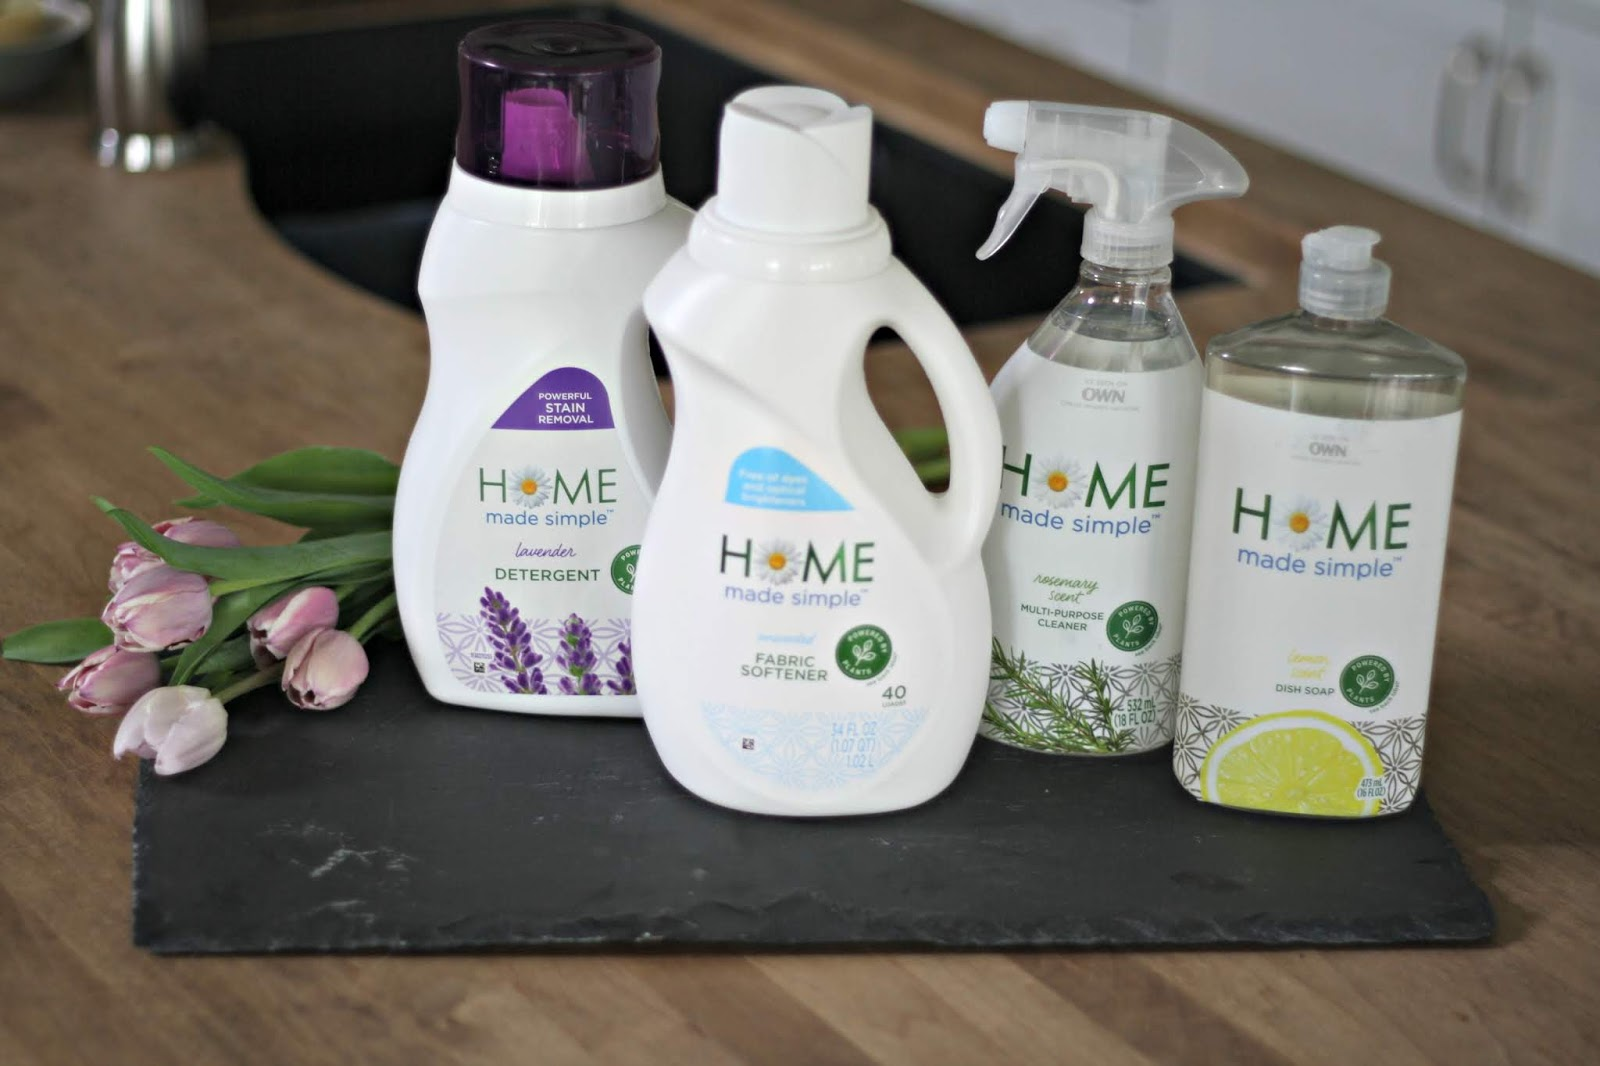 Home Made Simple plant-based cleaning products